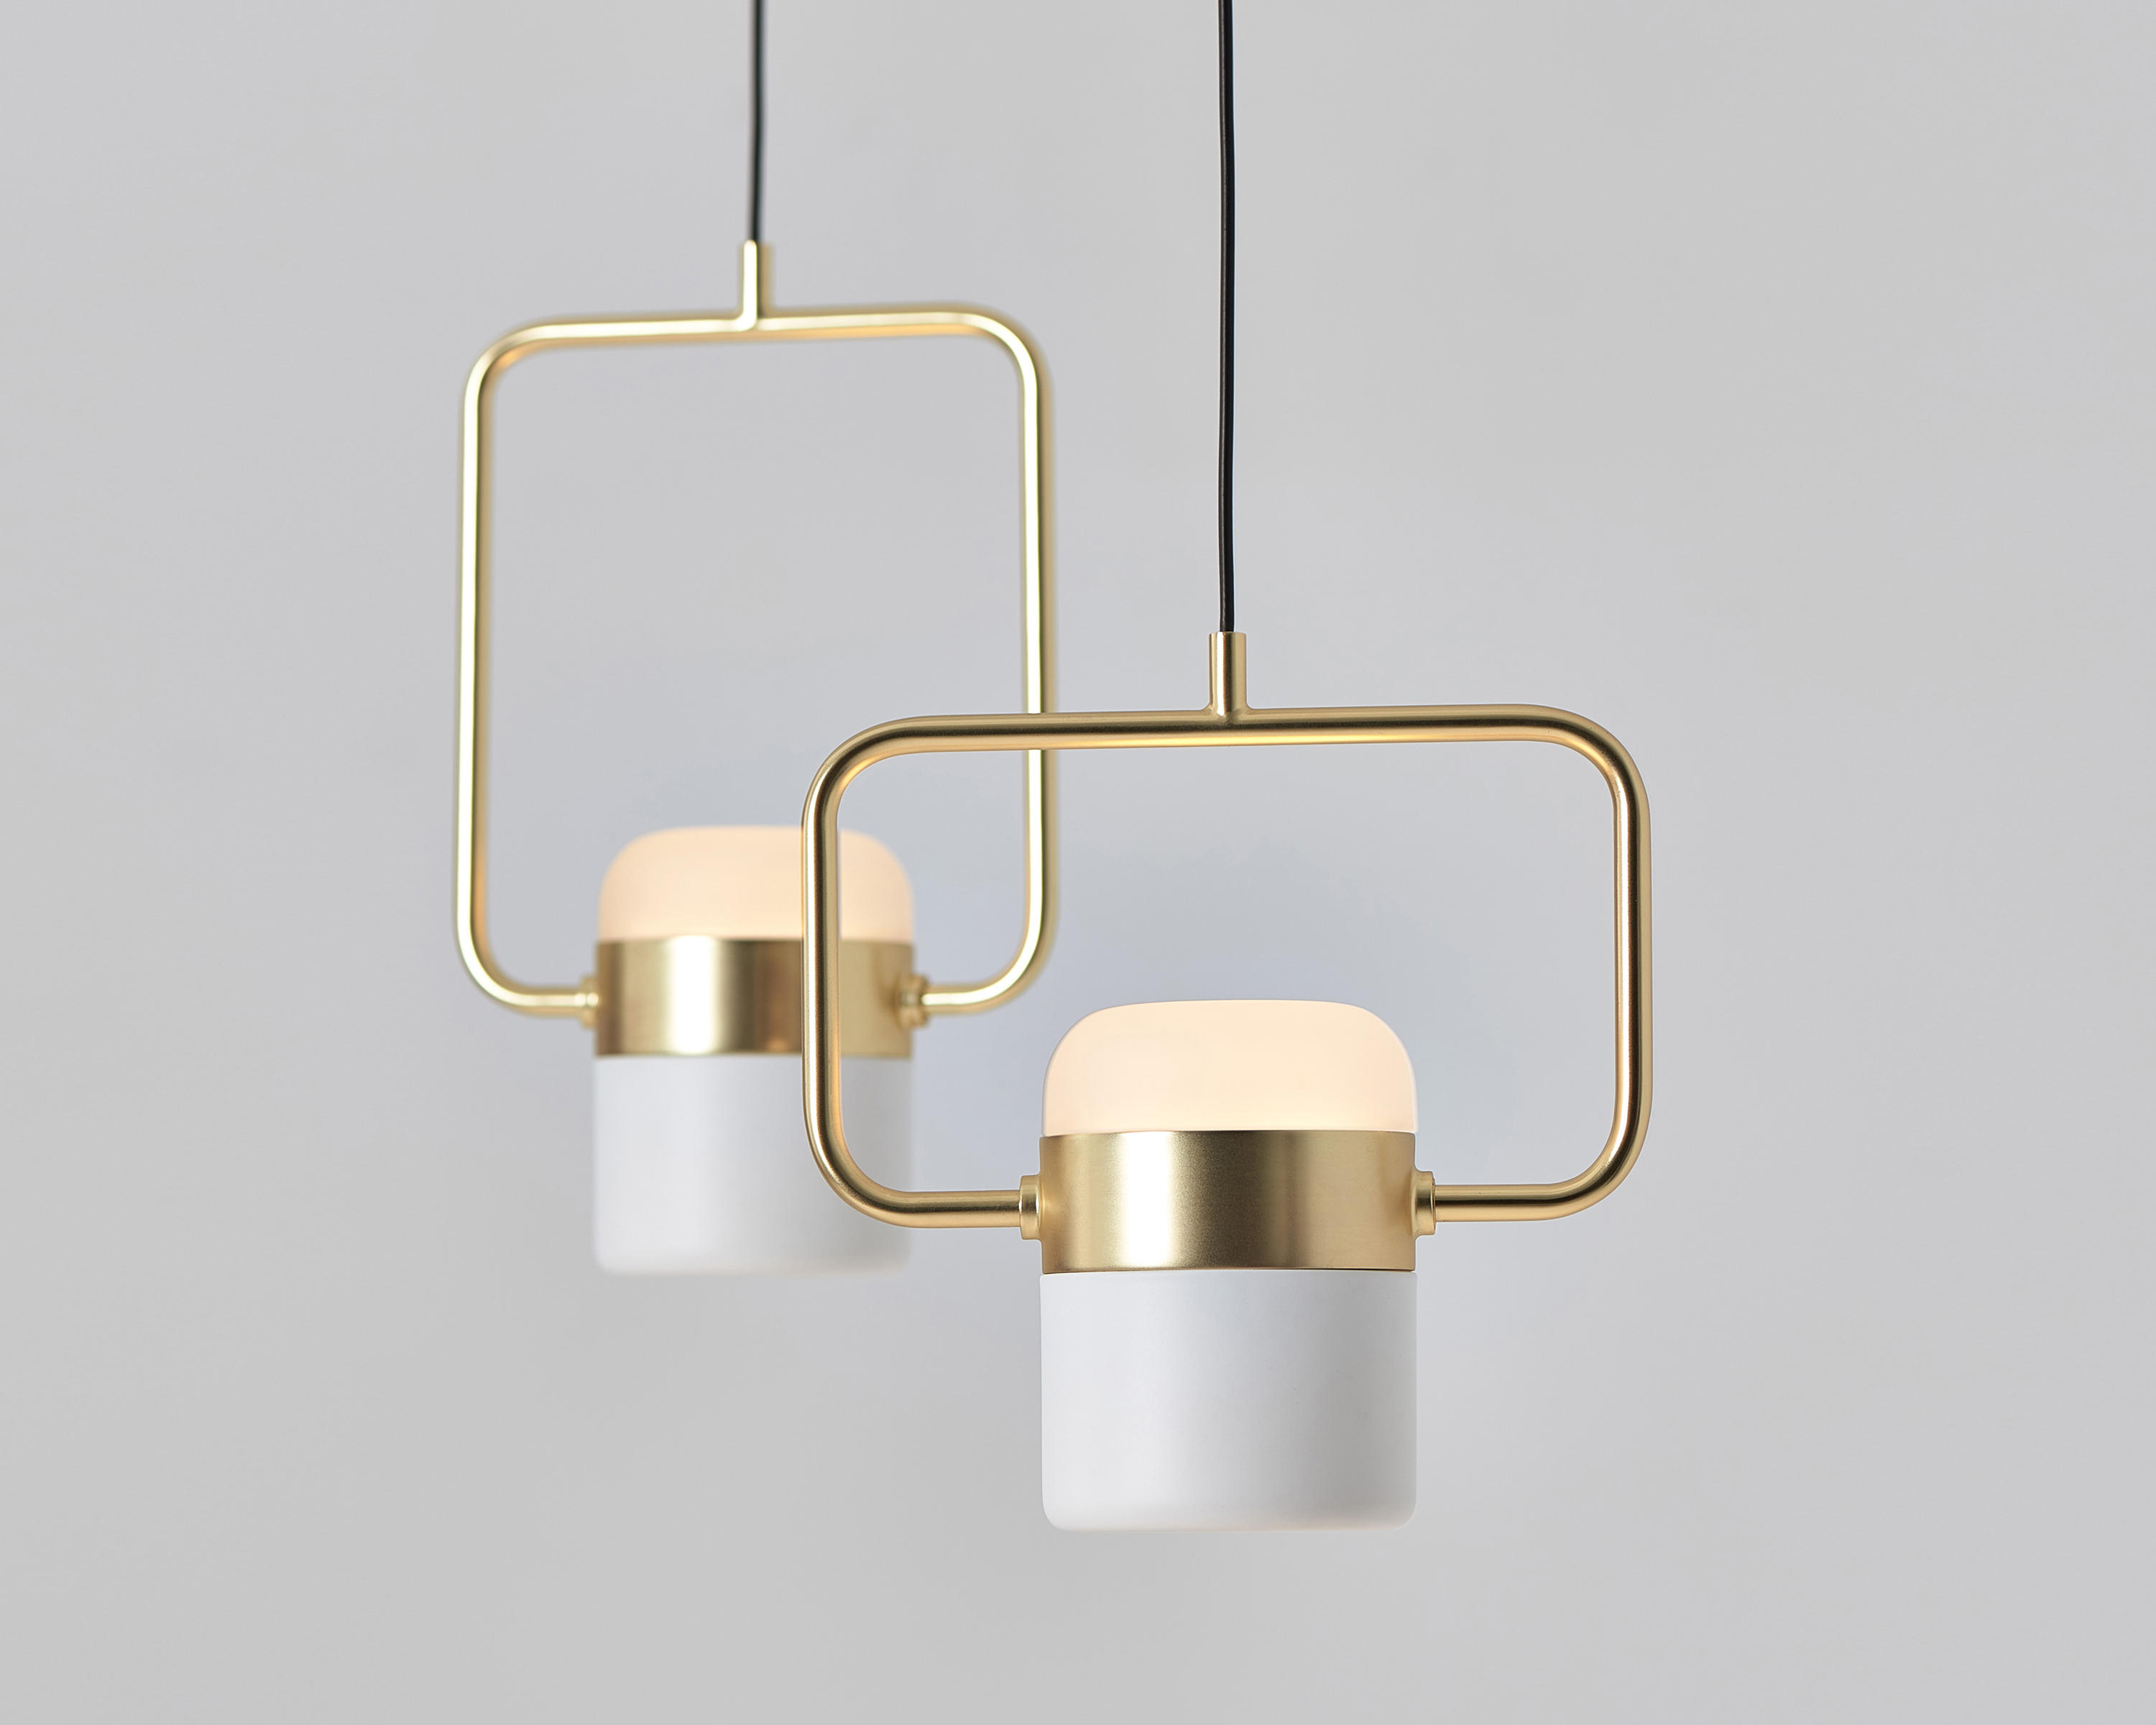 Ling Ph Pv By Seeddesign Suspended Lights